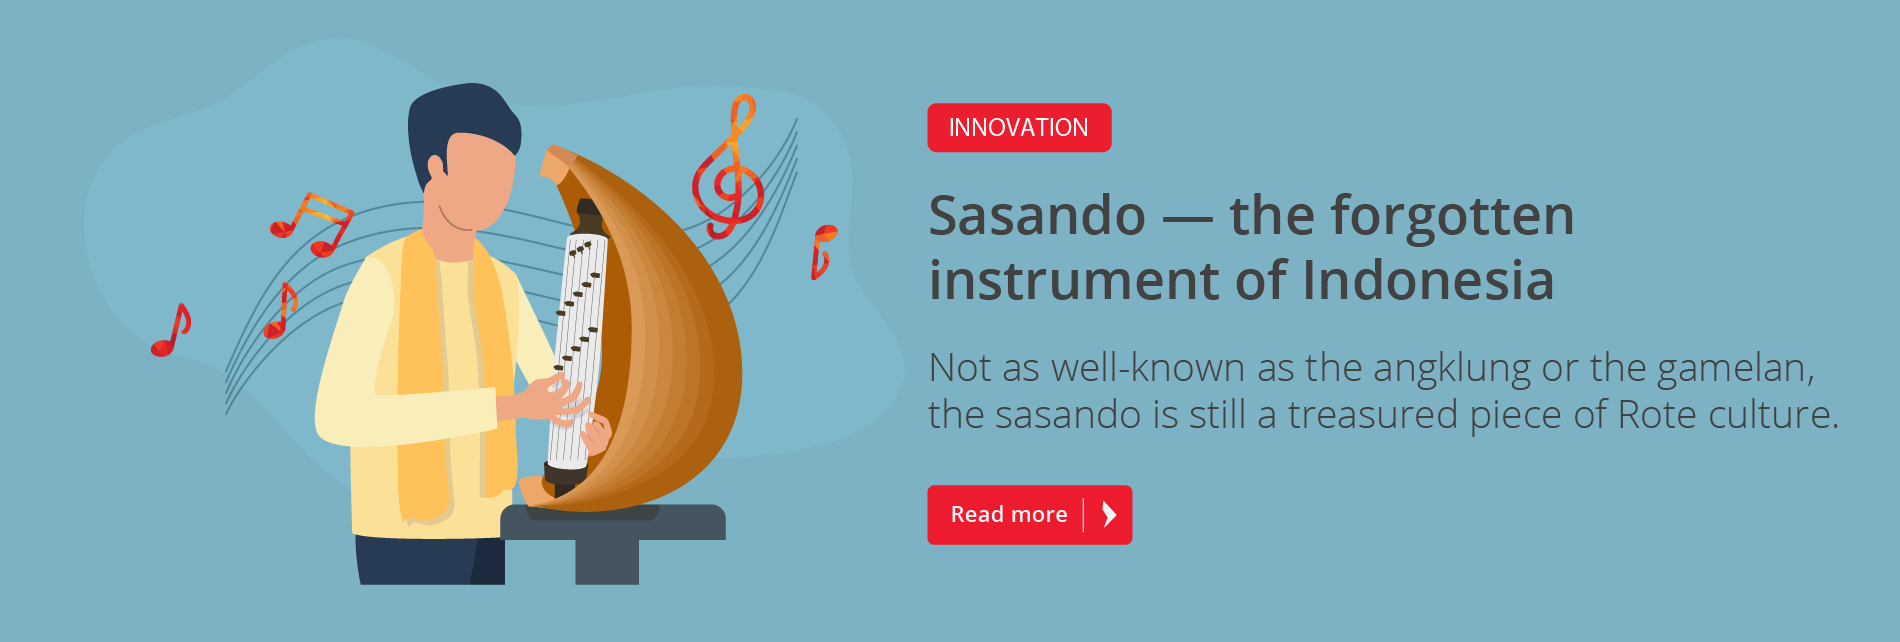 Sasando — an instrument with many tales